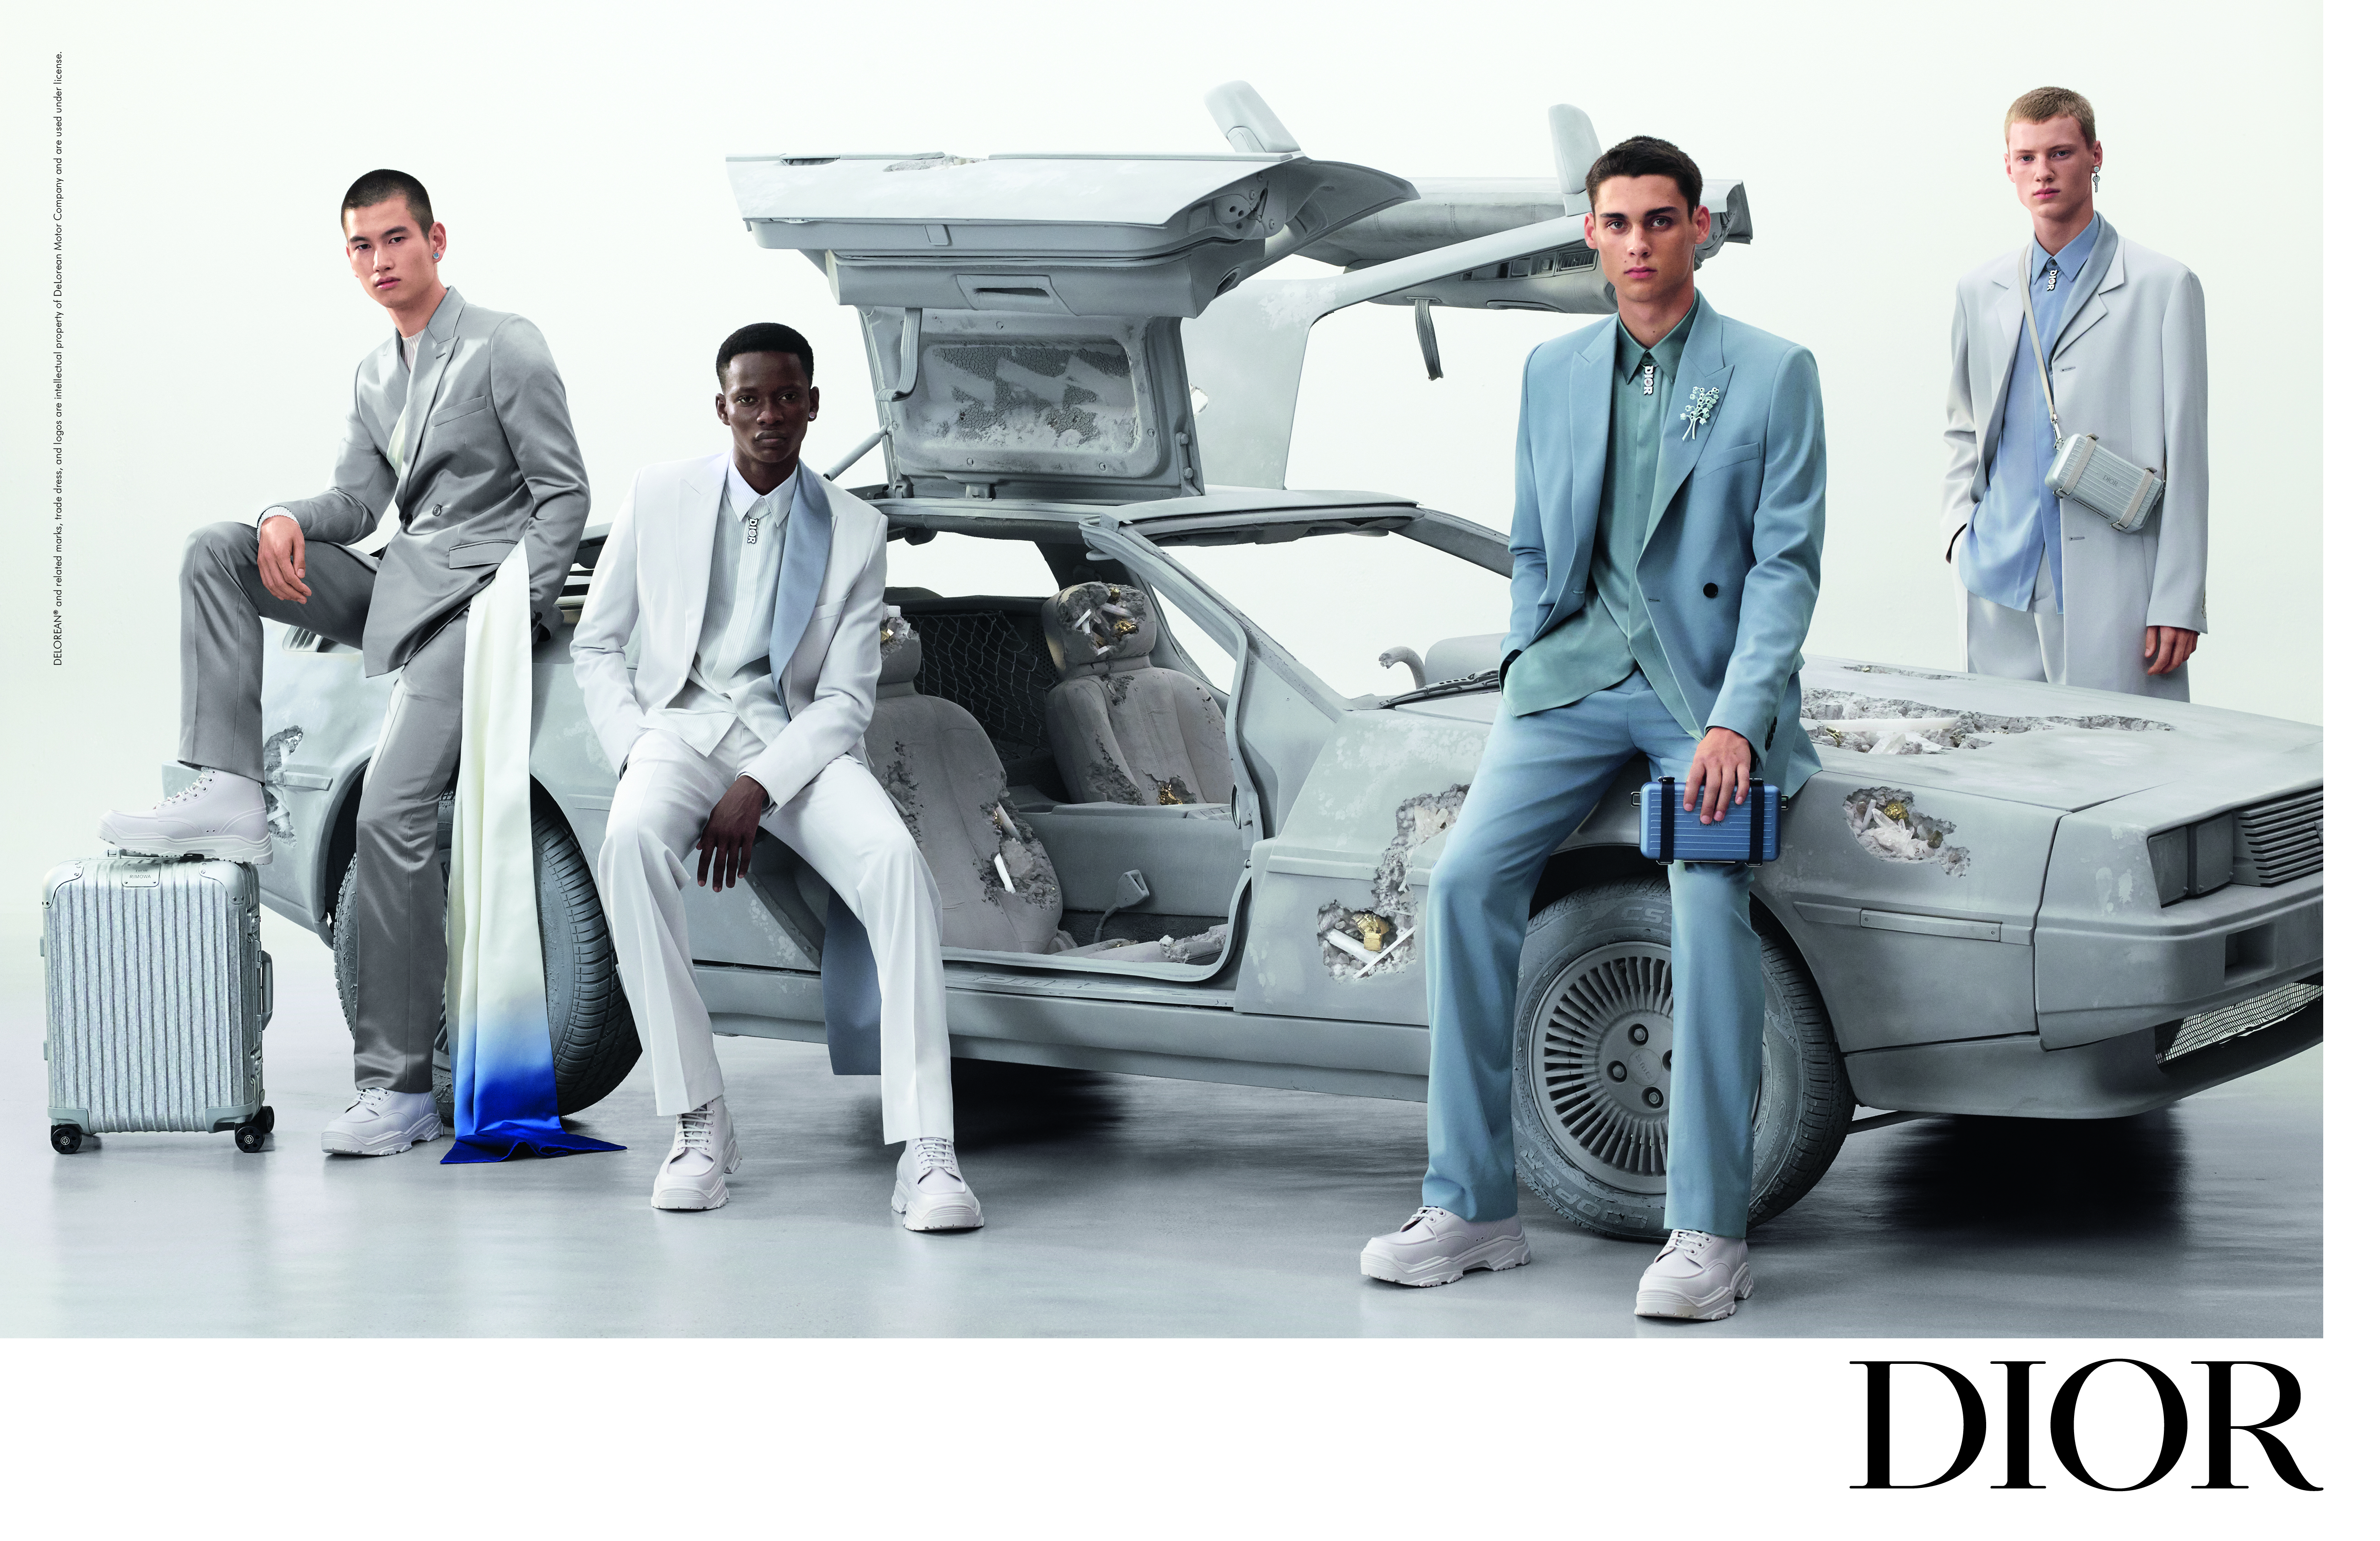 The Dior men's ad campaign featuring a sculpture by Daniel Arsham.